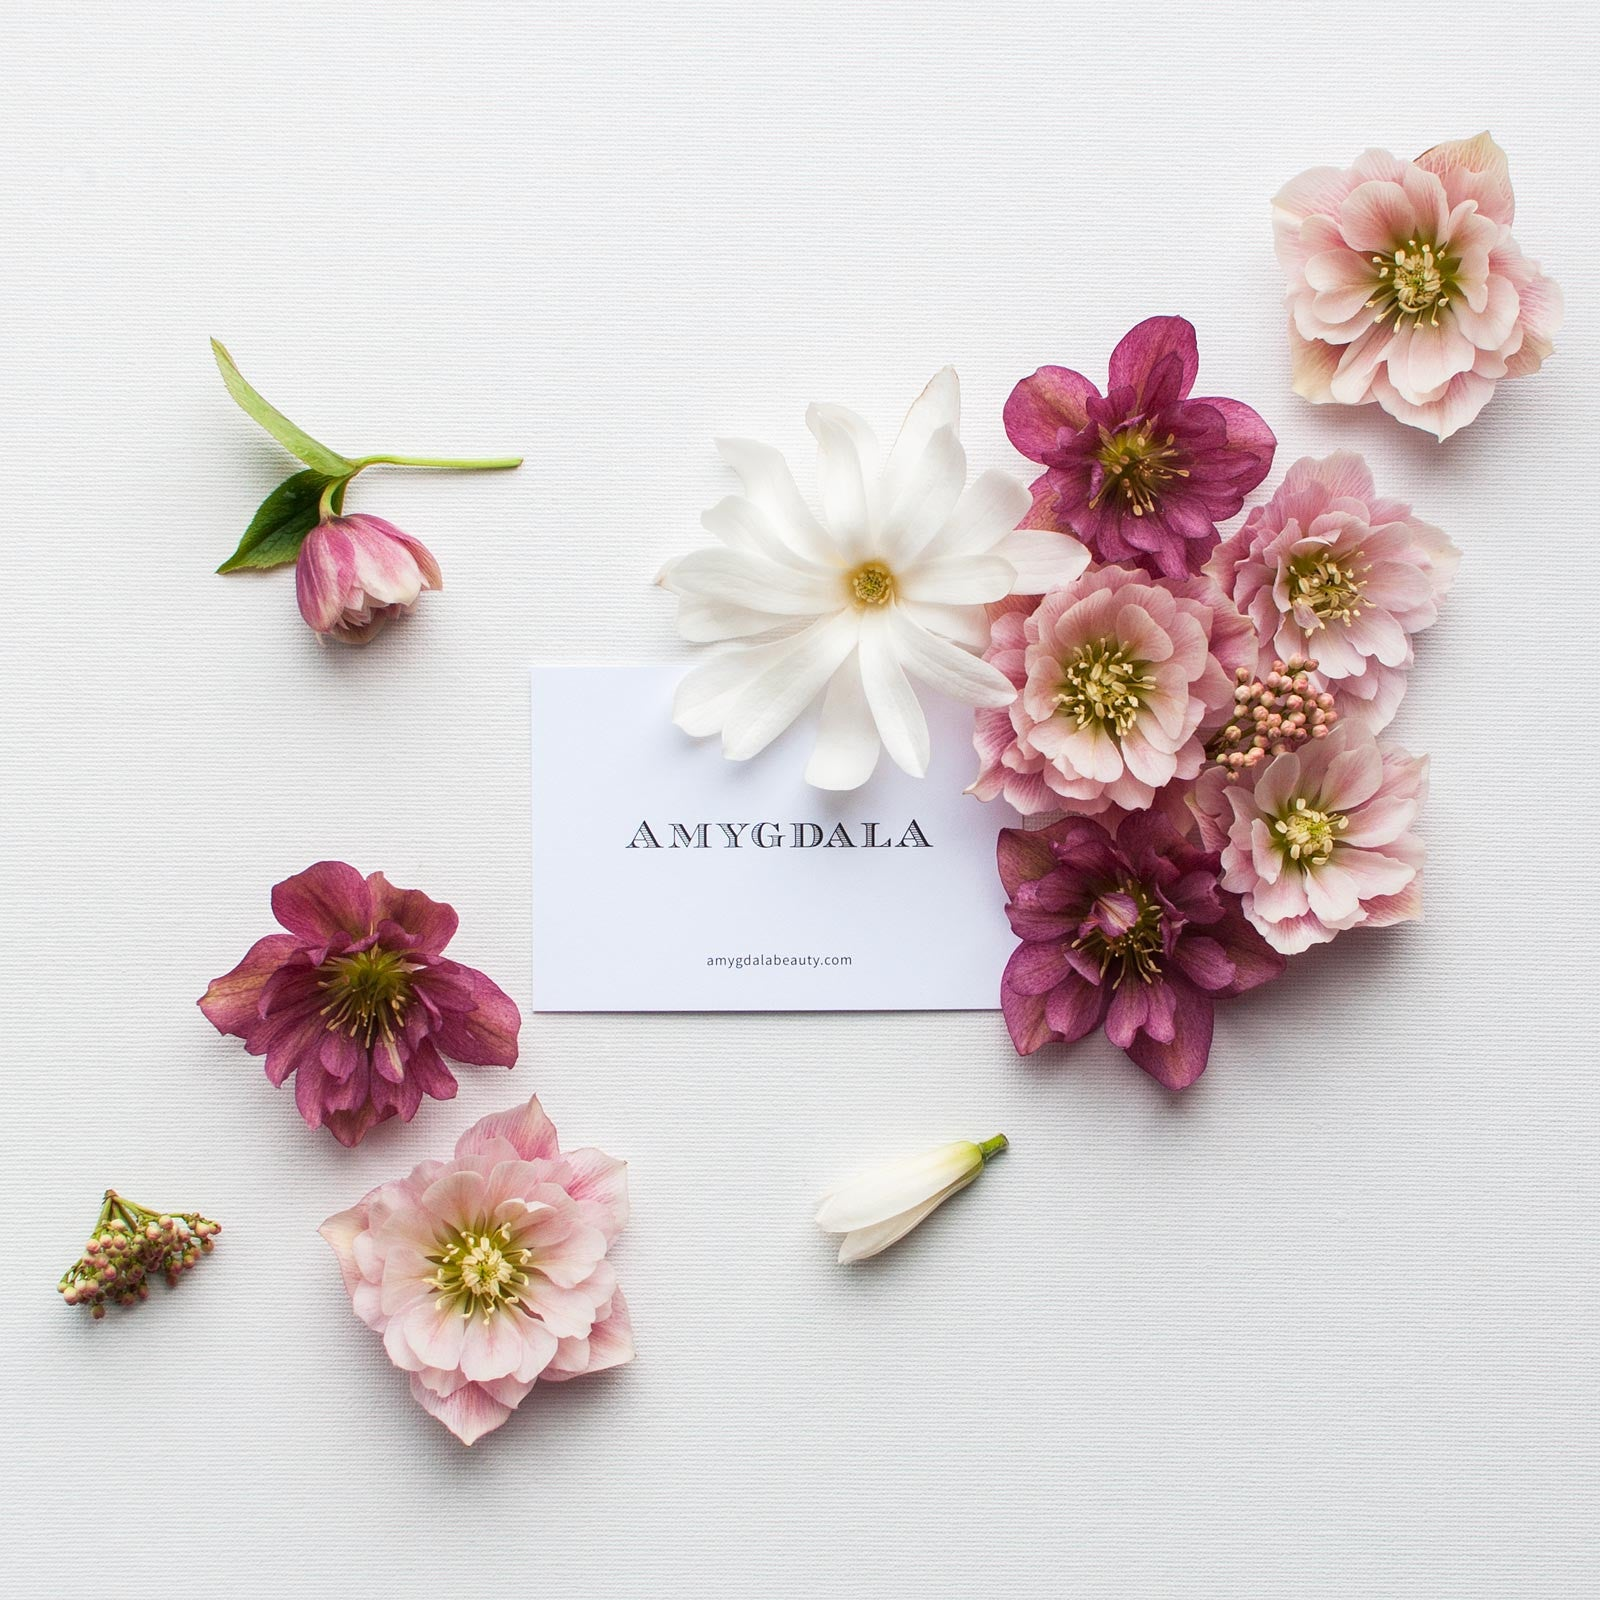 Amygdala Perfume Brand with flowers